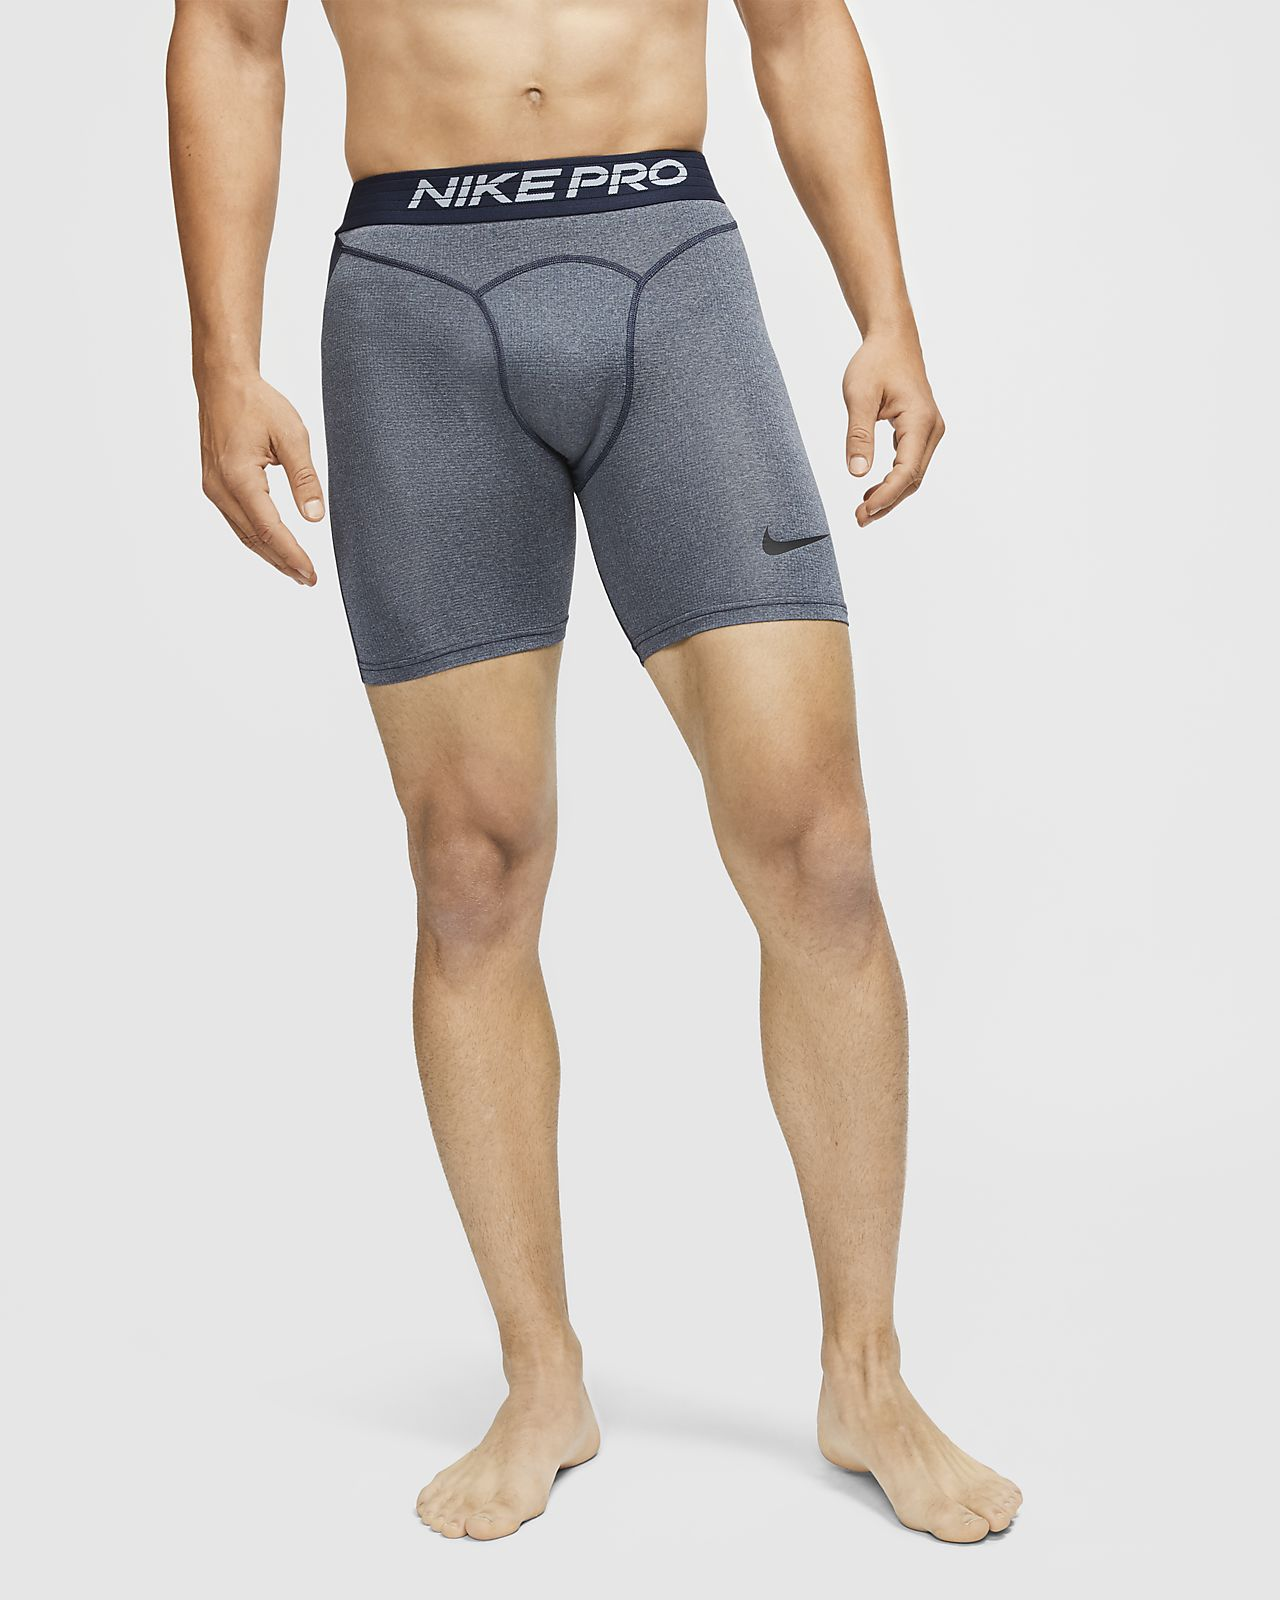 Nike Pro Breathe Men's Shorts